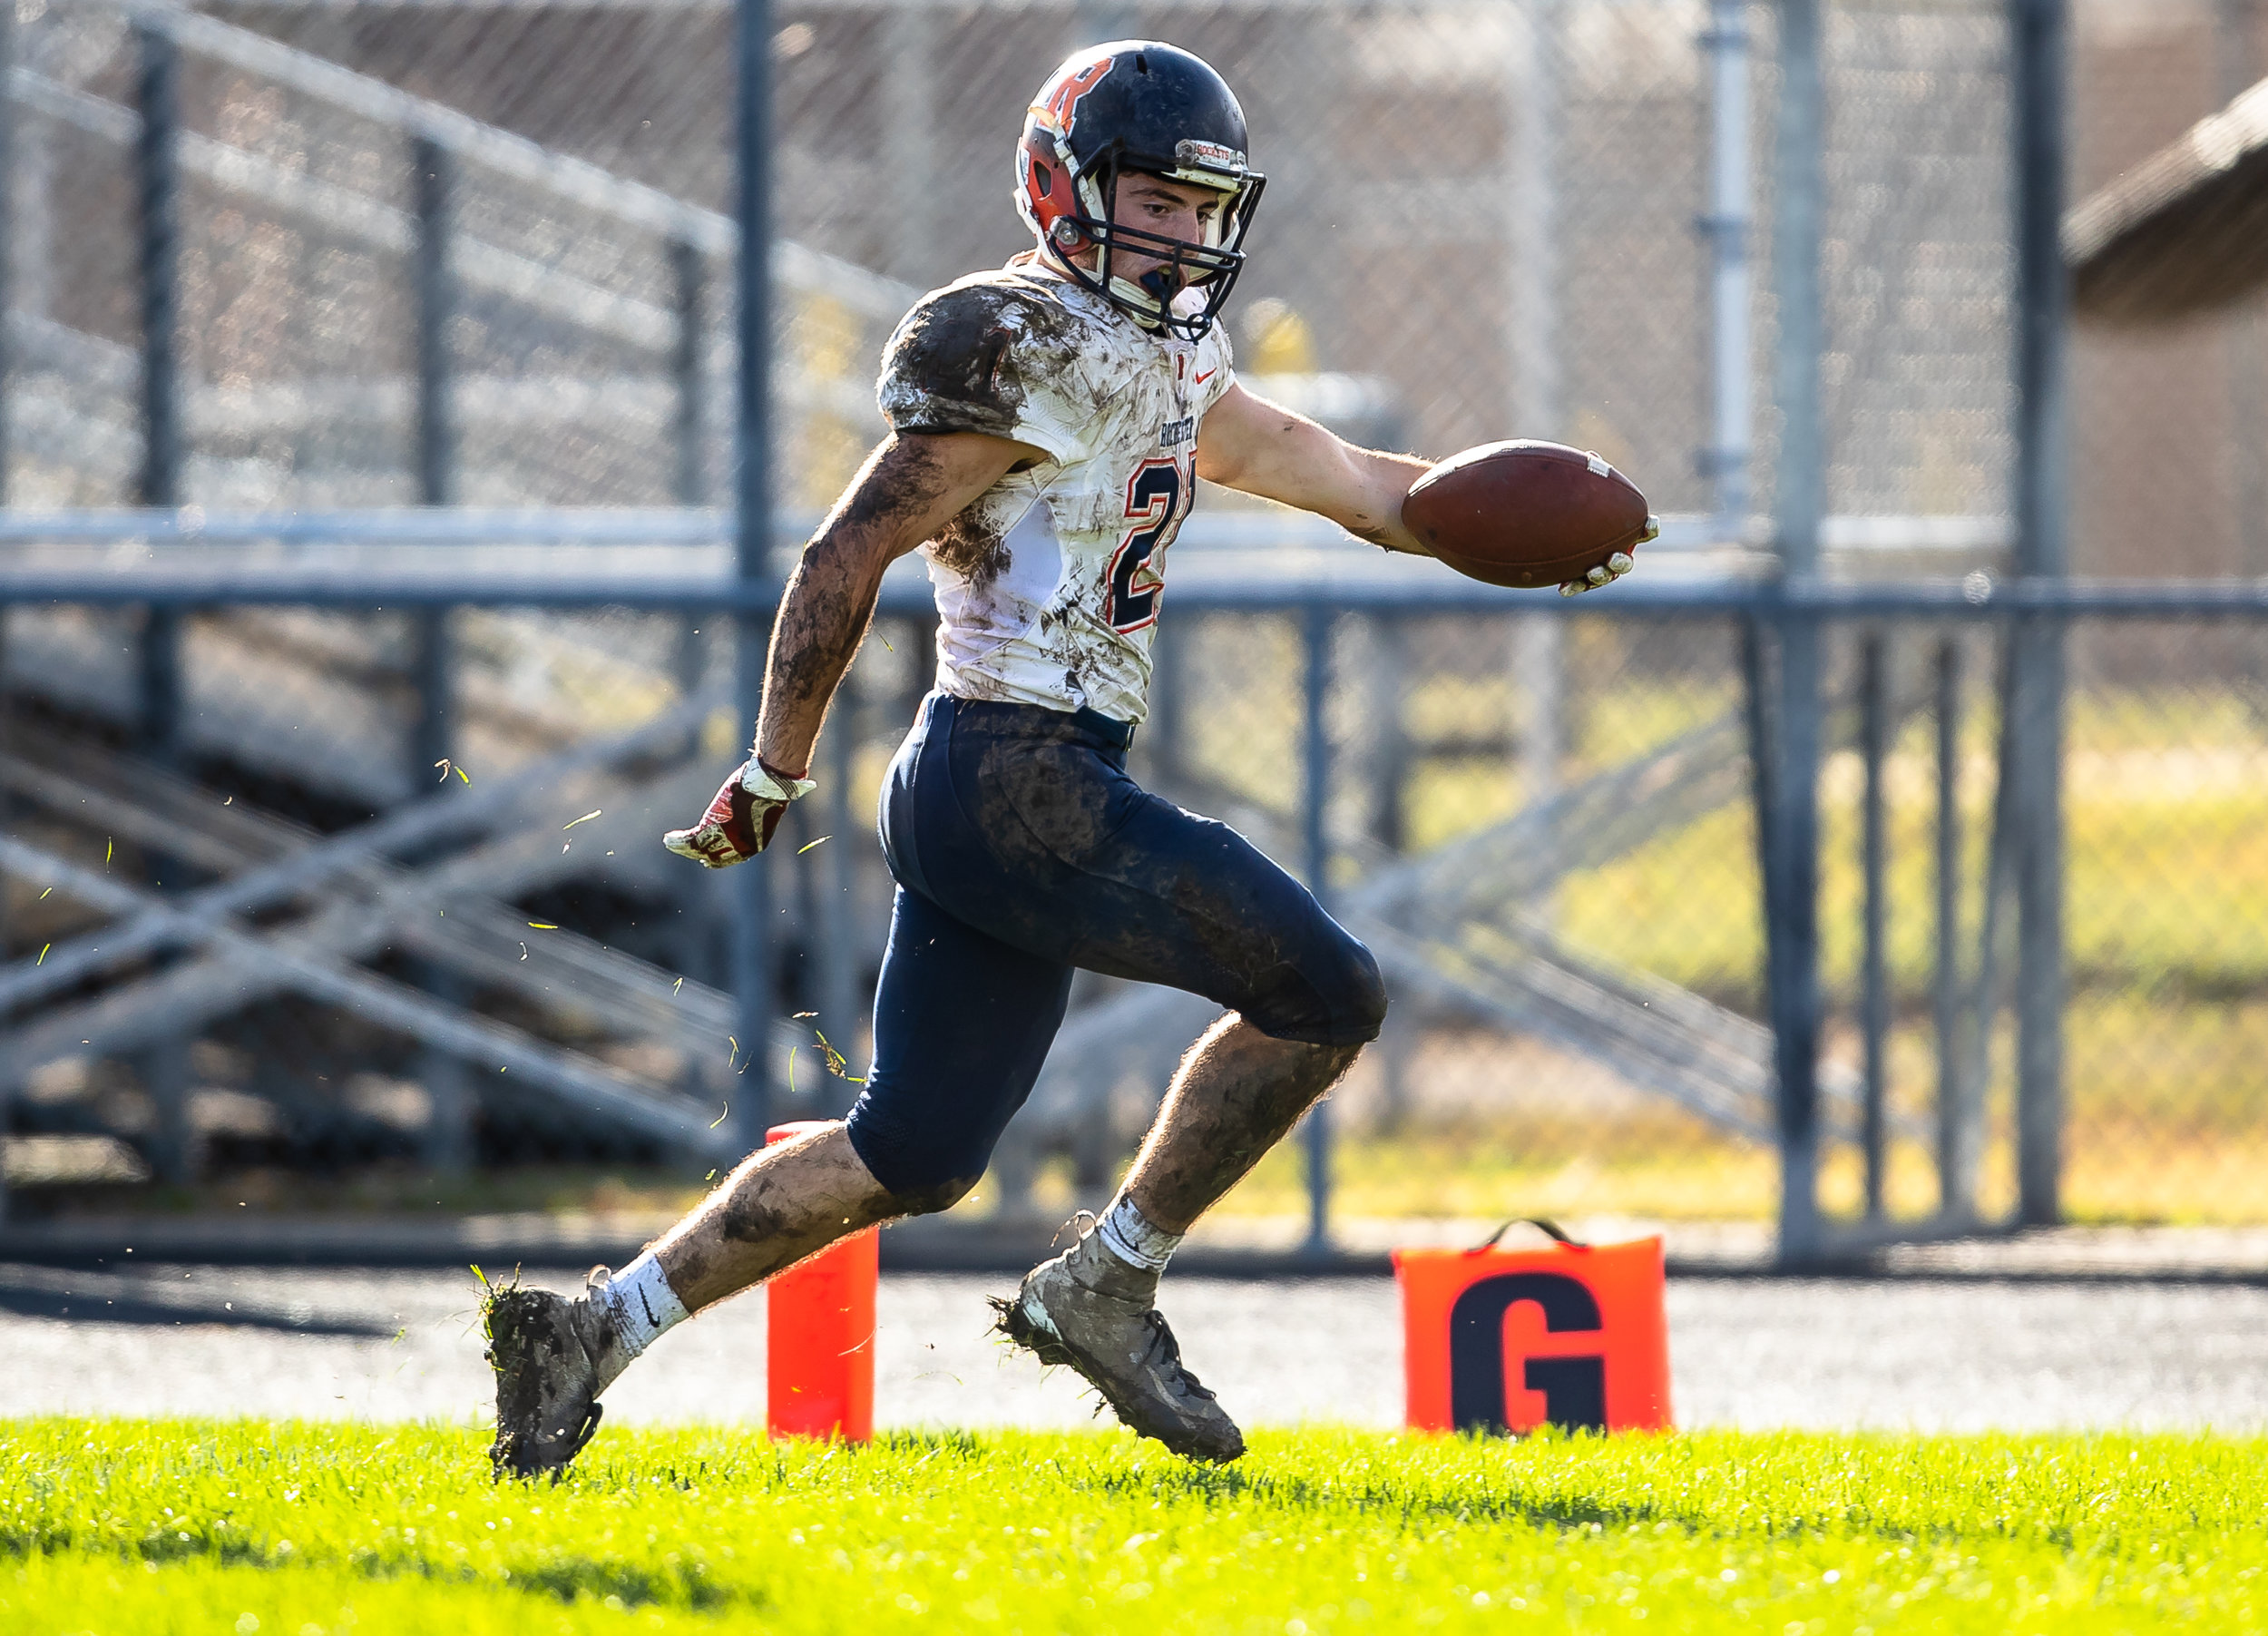 Rochester's David Yoggerst (21) goes in for a touchdown against Springfield in the second half at Memorial Stadium, Saturday, Oct. 6, 2018, in Springfield, Ill. [Justin L. Fowler/The State Journal-Register]